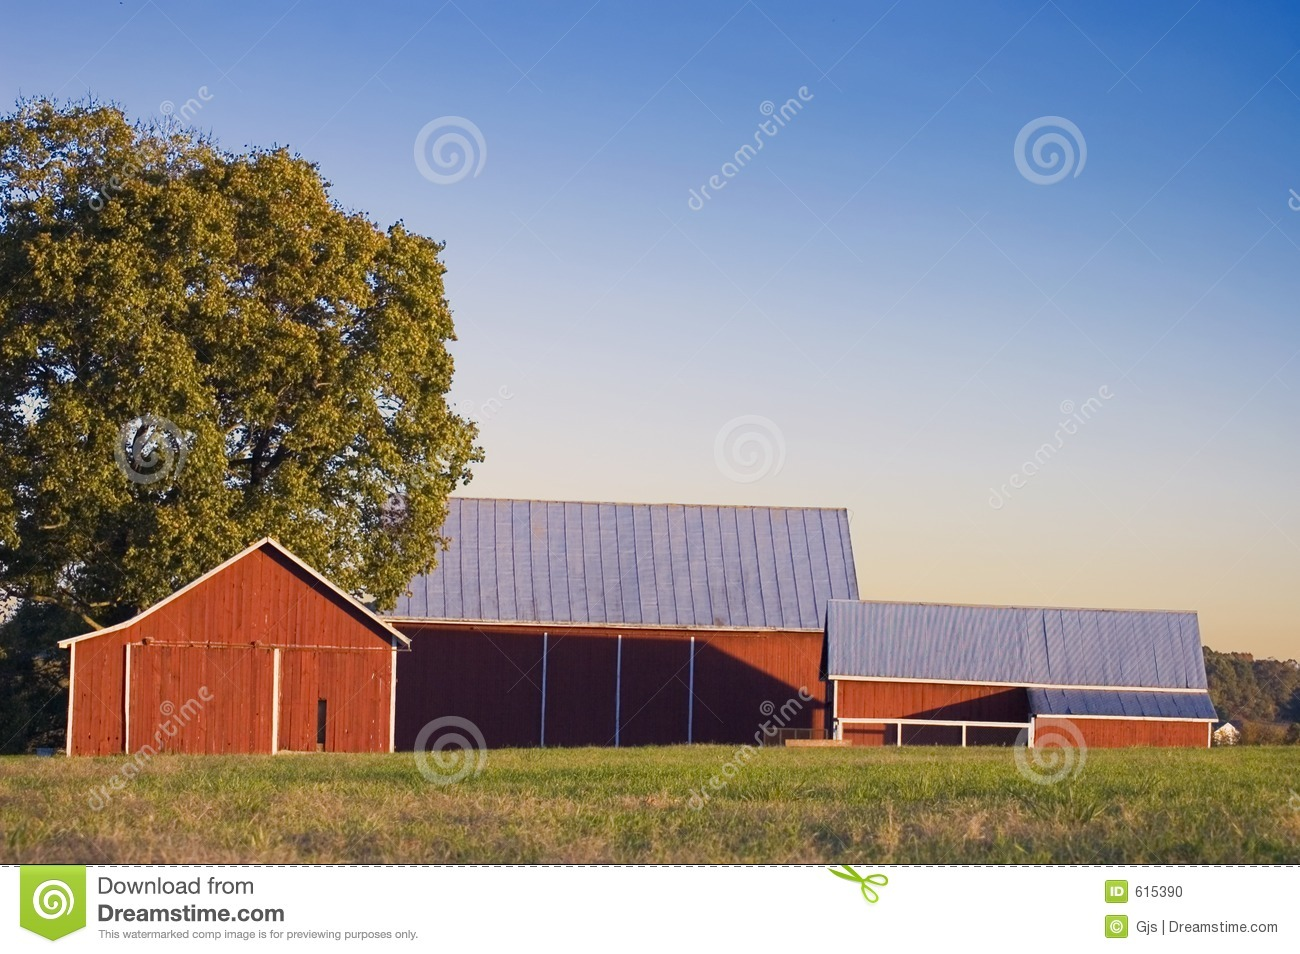 Cow on green pasture with red barn with grain silo royalty free stock - Royalty Free Stock Photo Barn Pasture Red